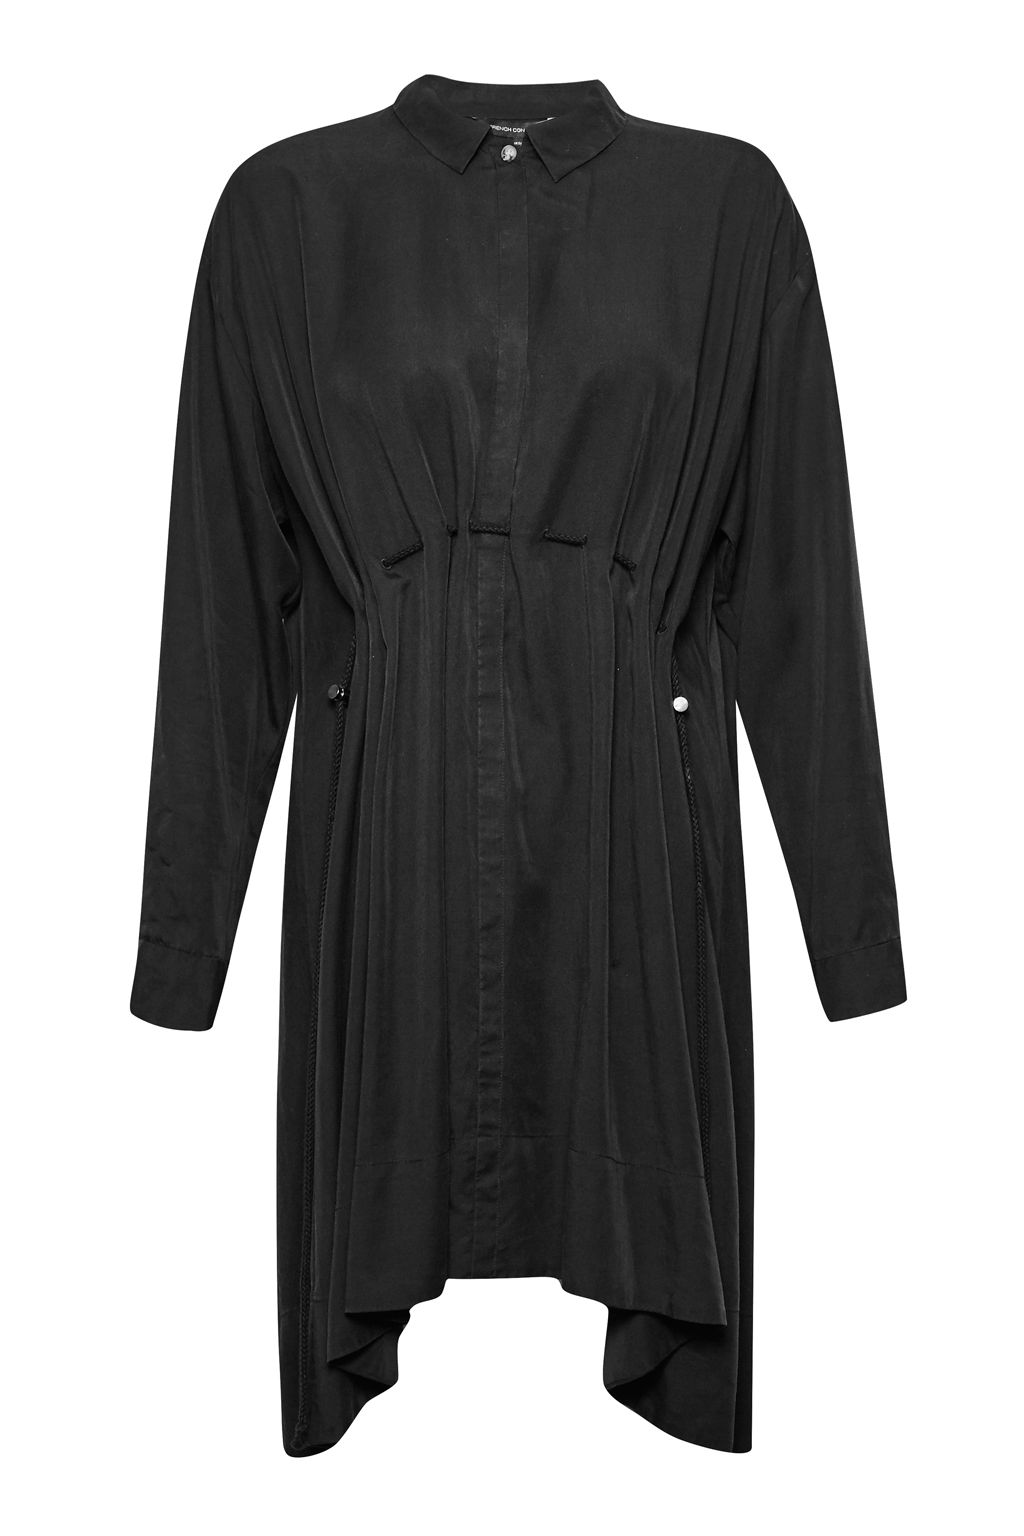 French Connection Sunny Tencel Shirt Dress, Black